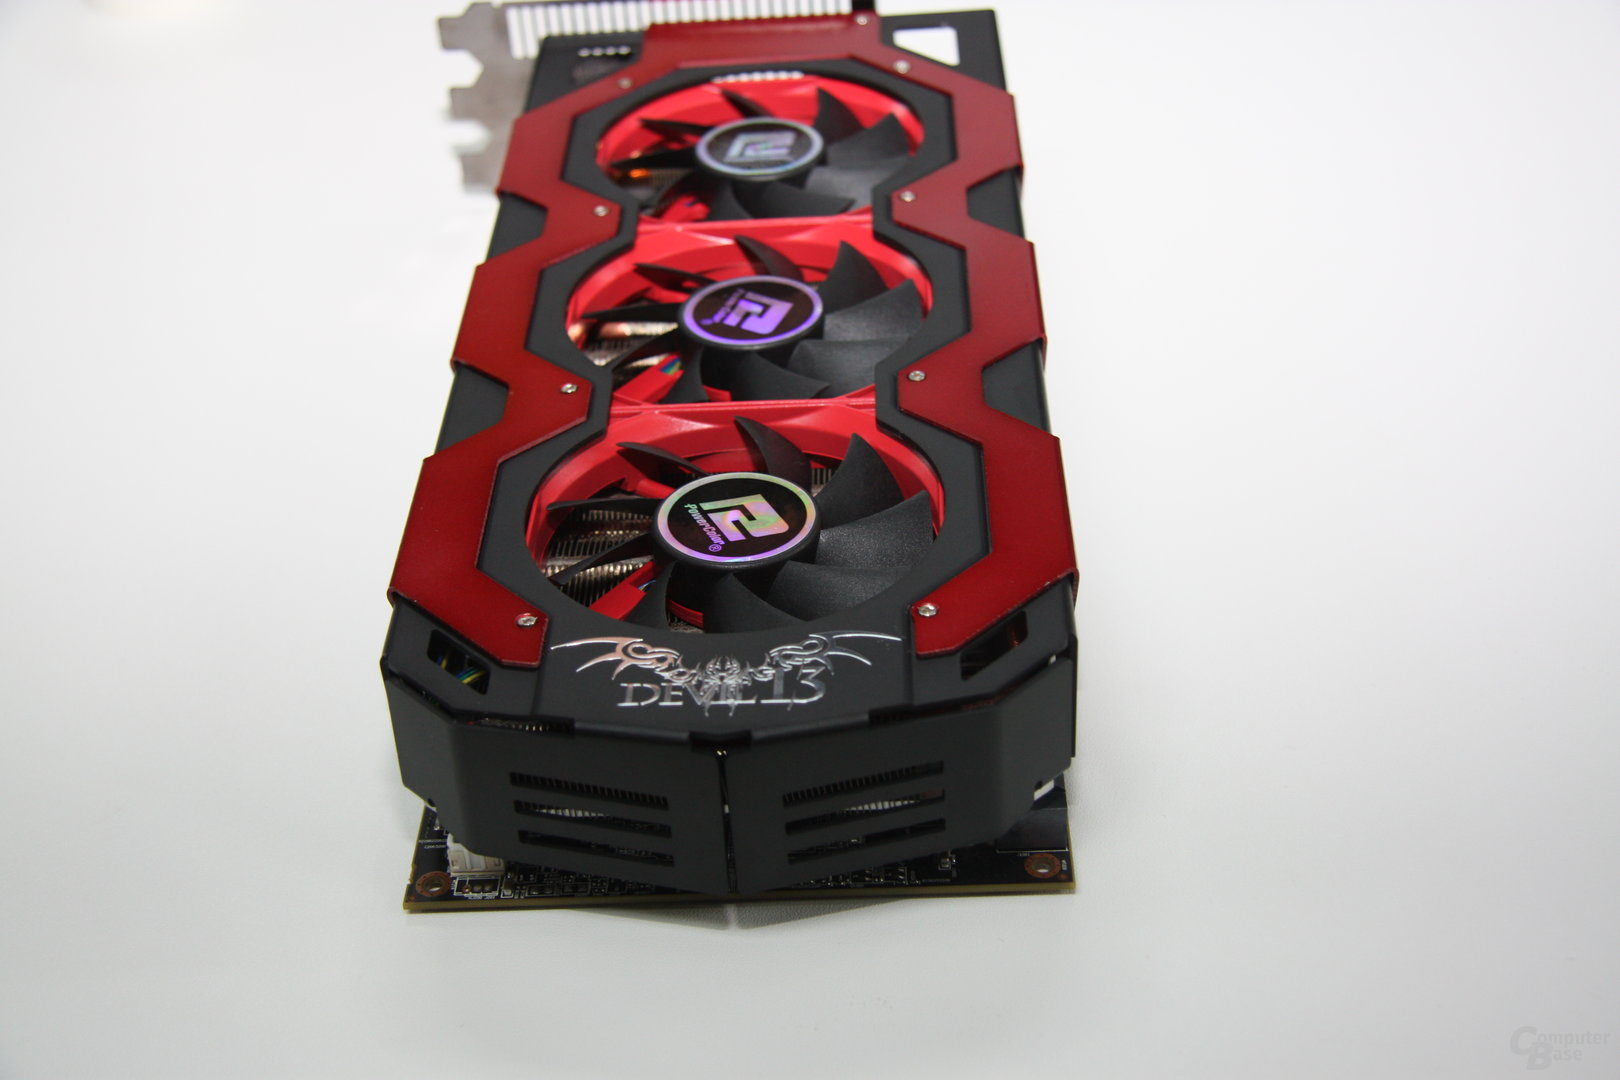 PowerColor Radeon HD 7970 X2 Devil 13